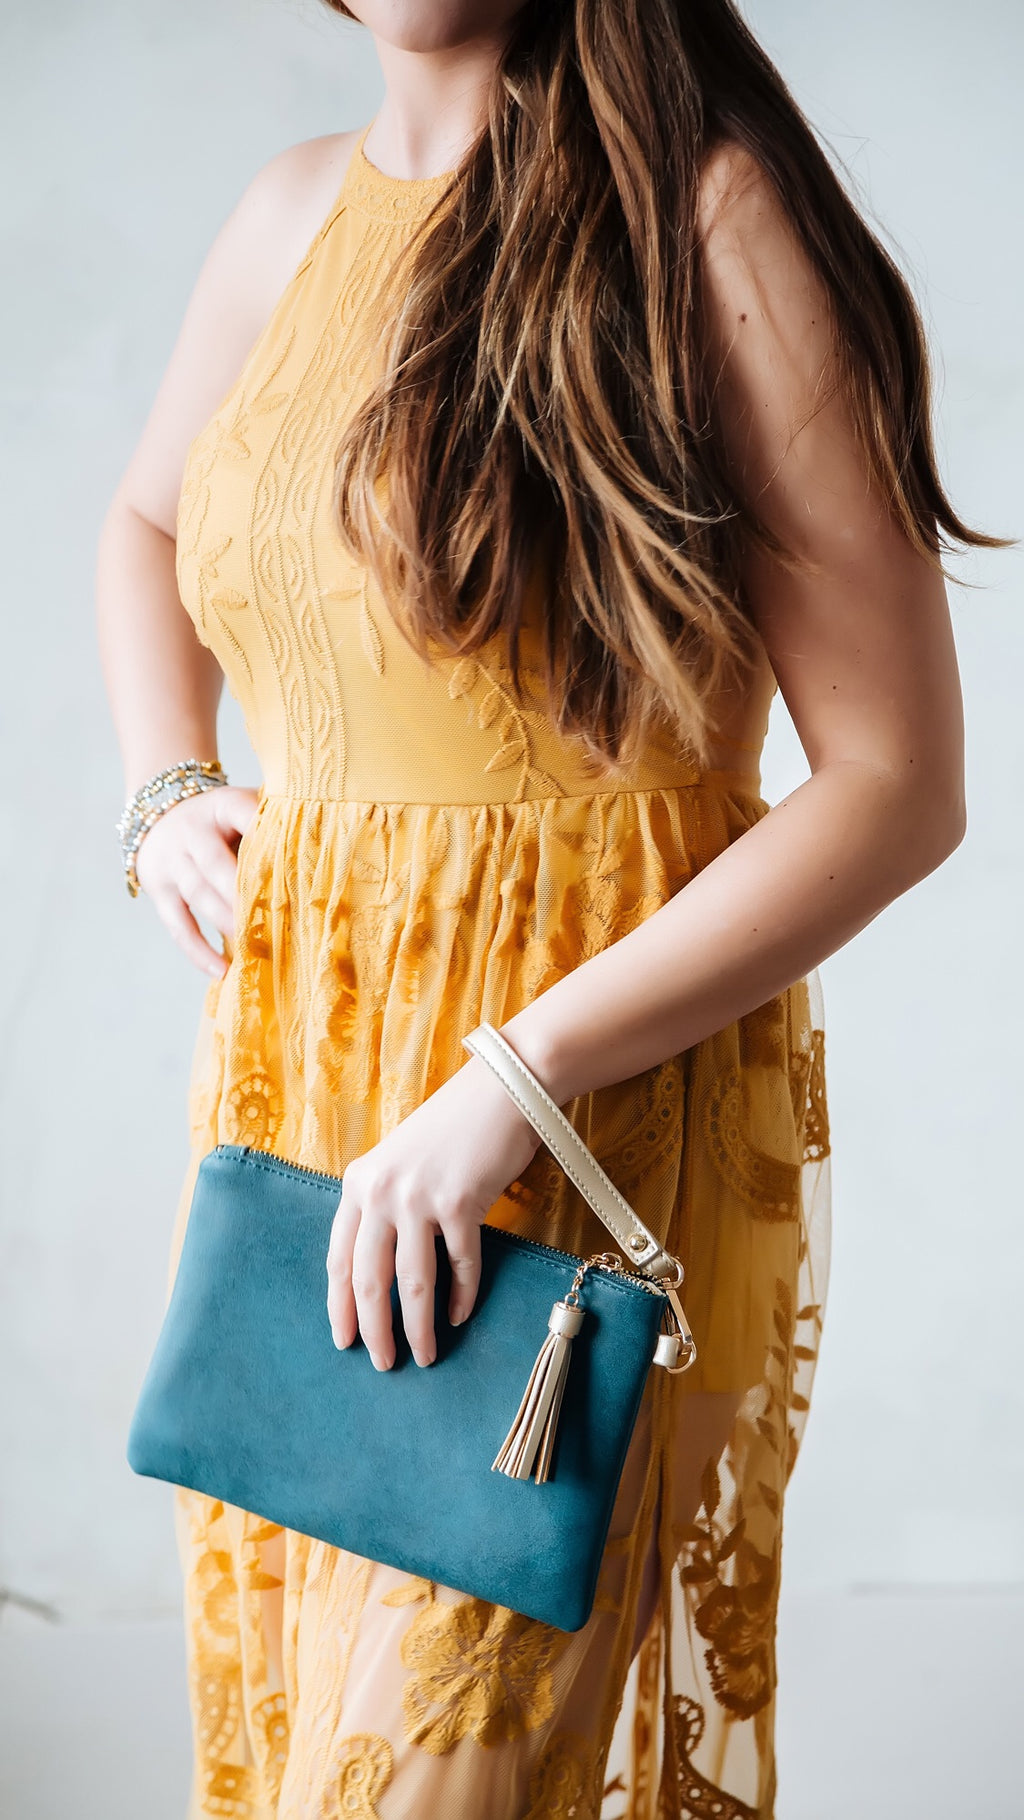 Touch of teal wristlet - Marcella